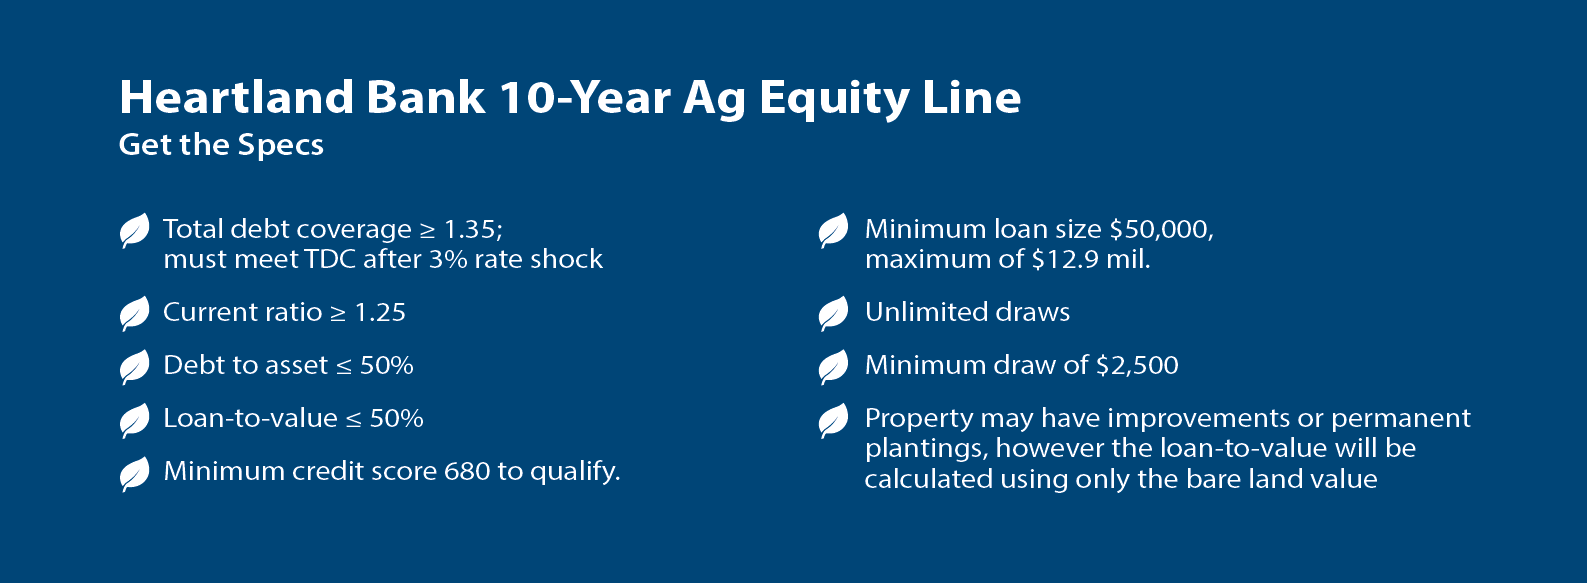 10 Year Ag Equity Line-Get the specs- talk to our Ag team today!